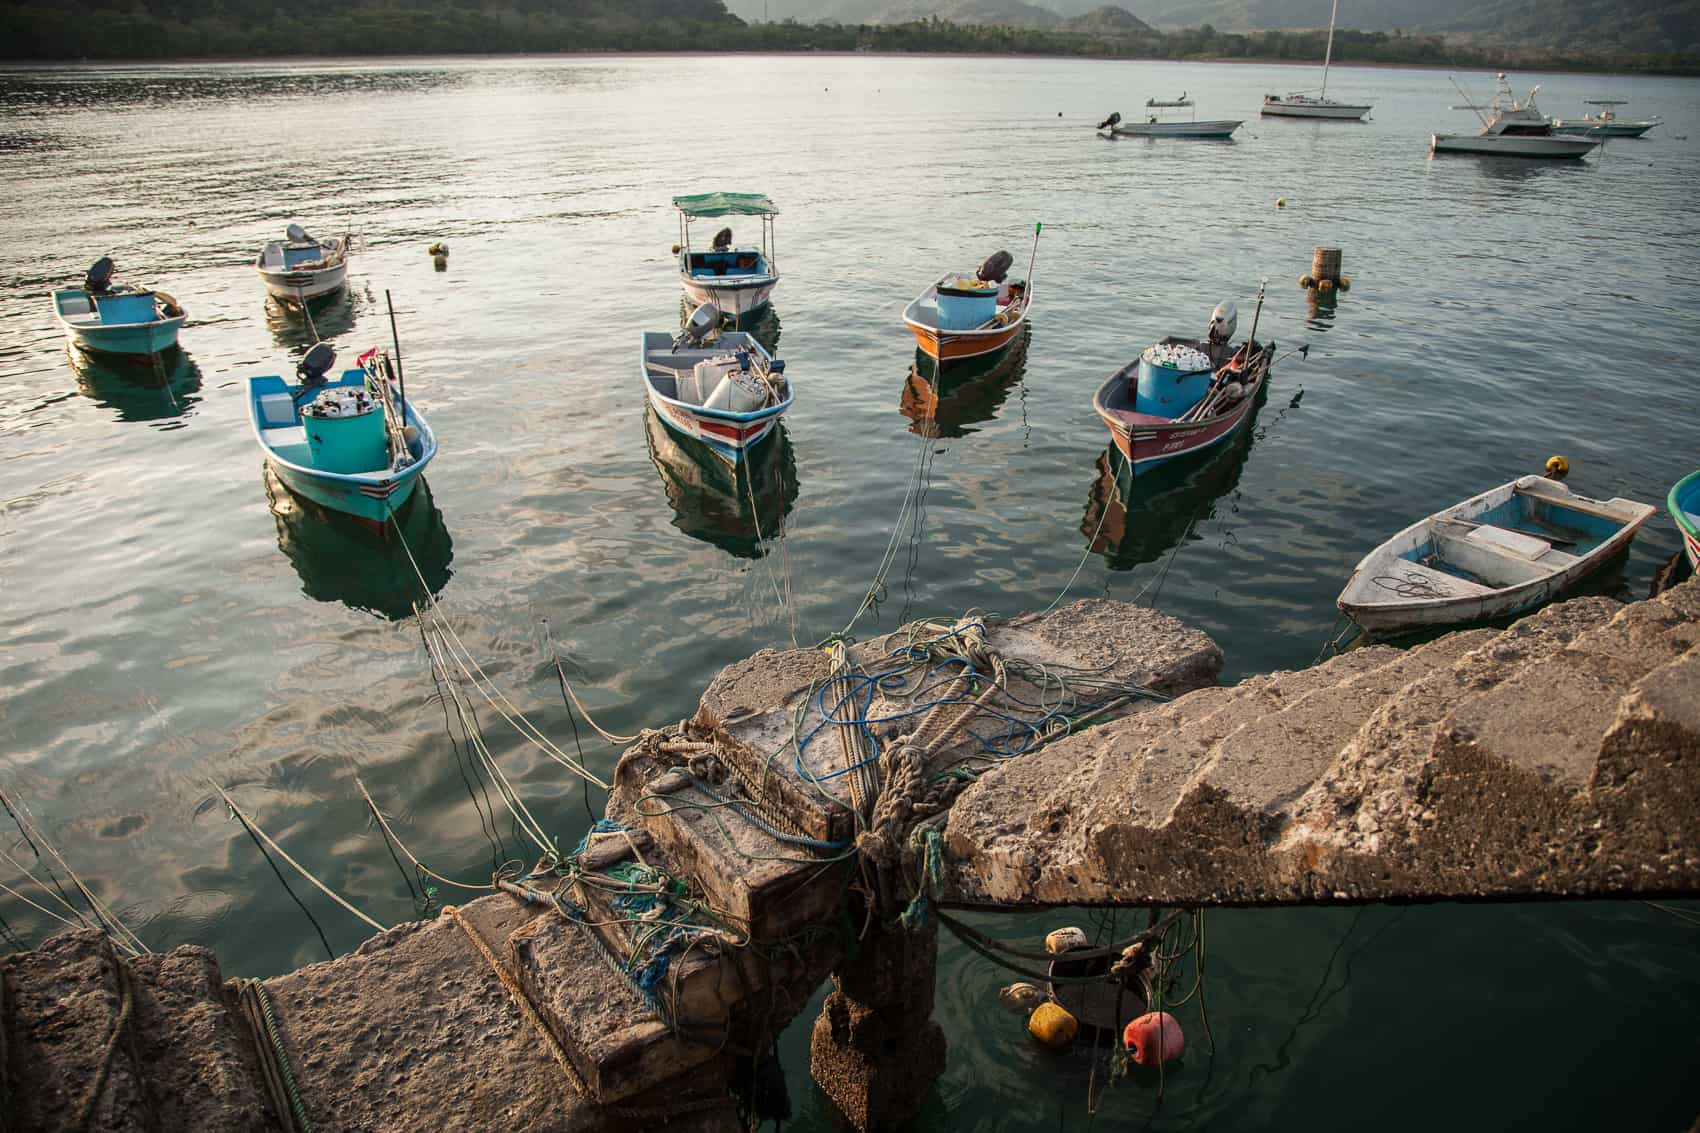 Fishing boats in the Gulf of Nicoya.